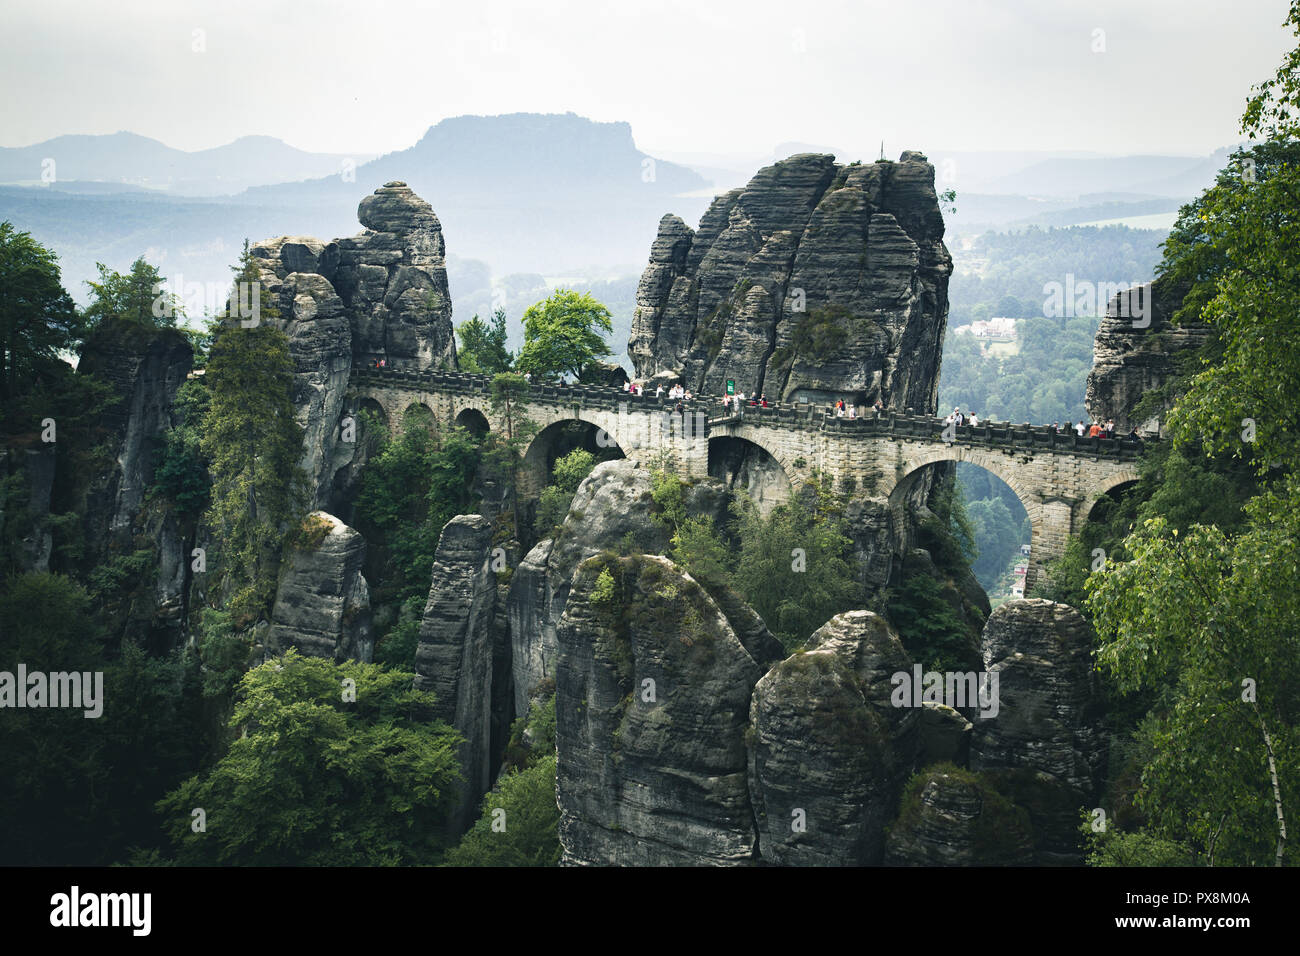 Beautiful panoramic view of famous Bastei Bridge with Elbe Sandstone mountains in Saxon Switzerland National Park on a moody day, Saxony, Germany - Stock Image